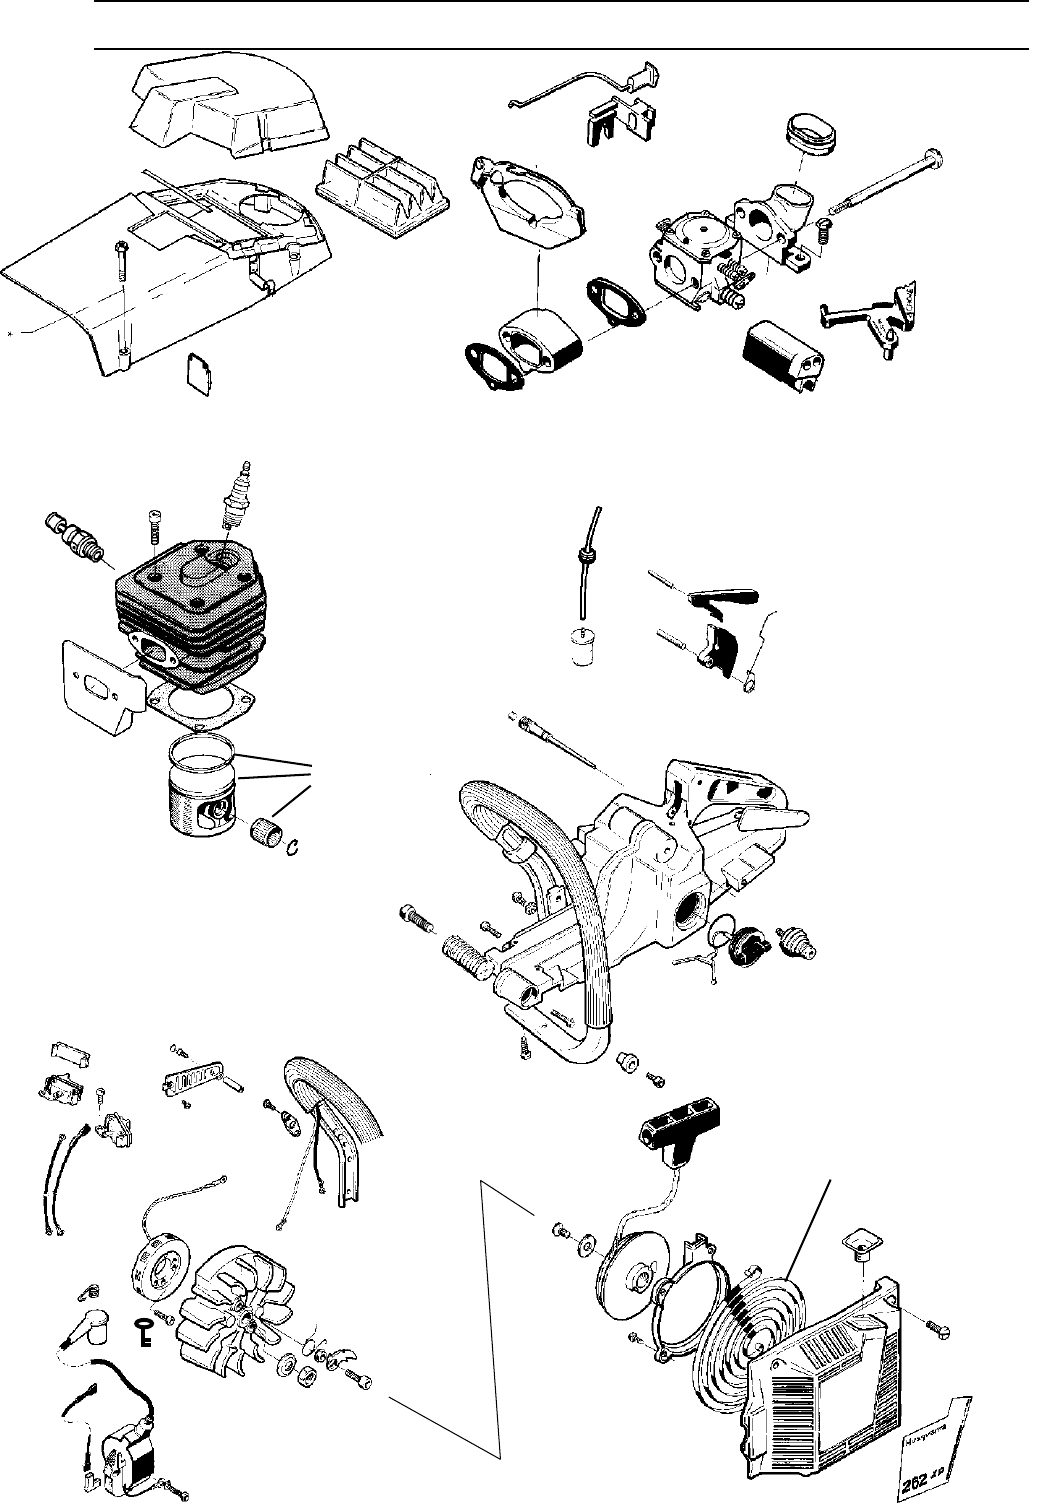 Page 31 of Husqvarna Chainsaw 1018855-26 User Guide